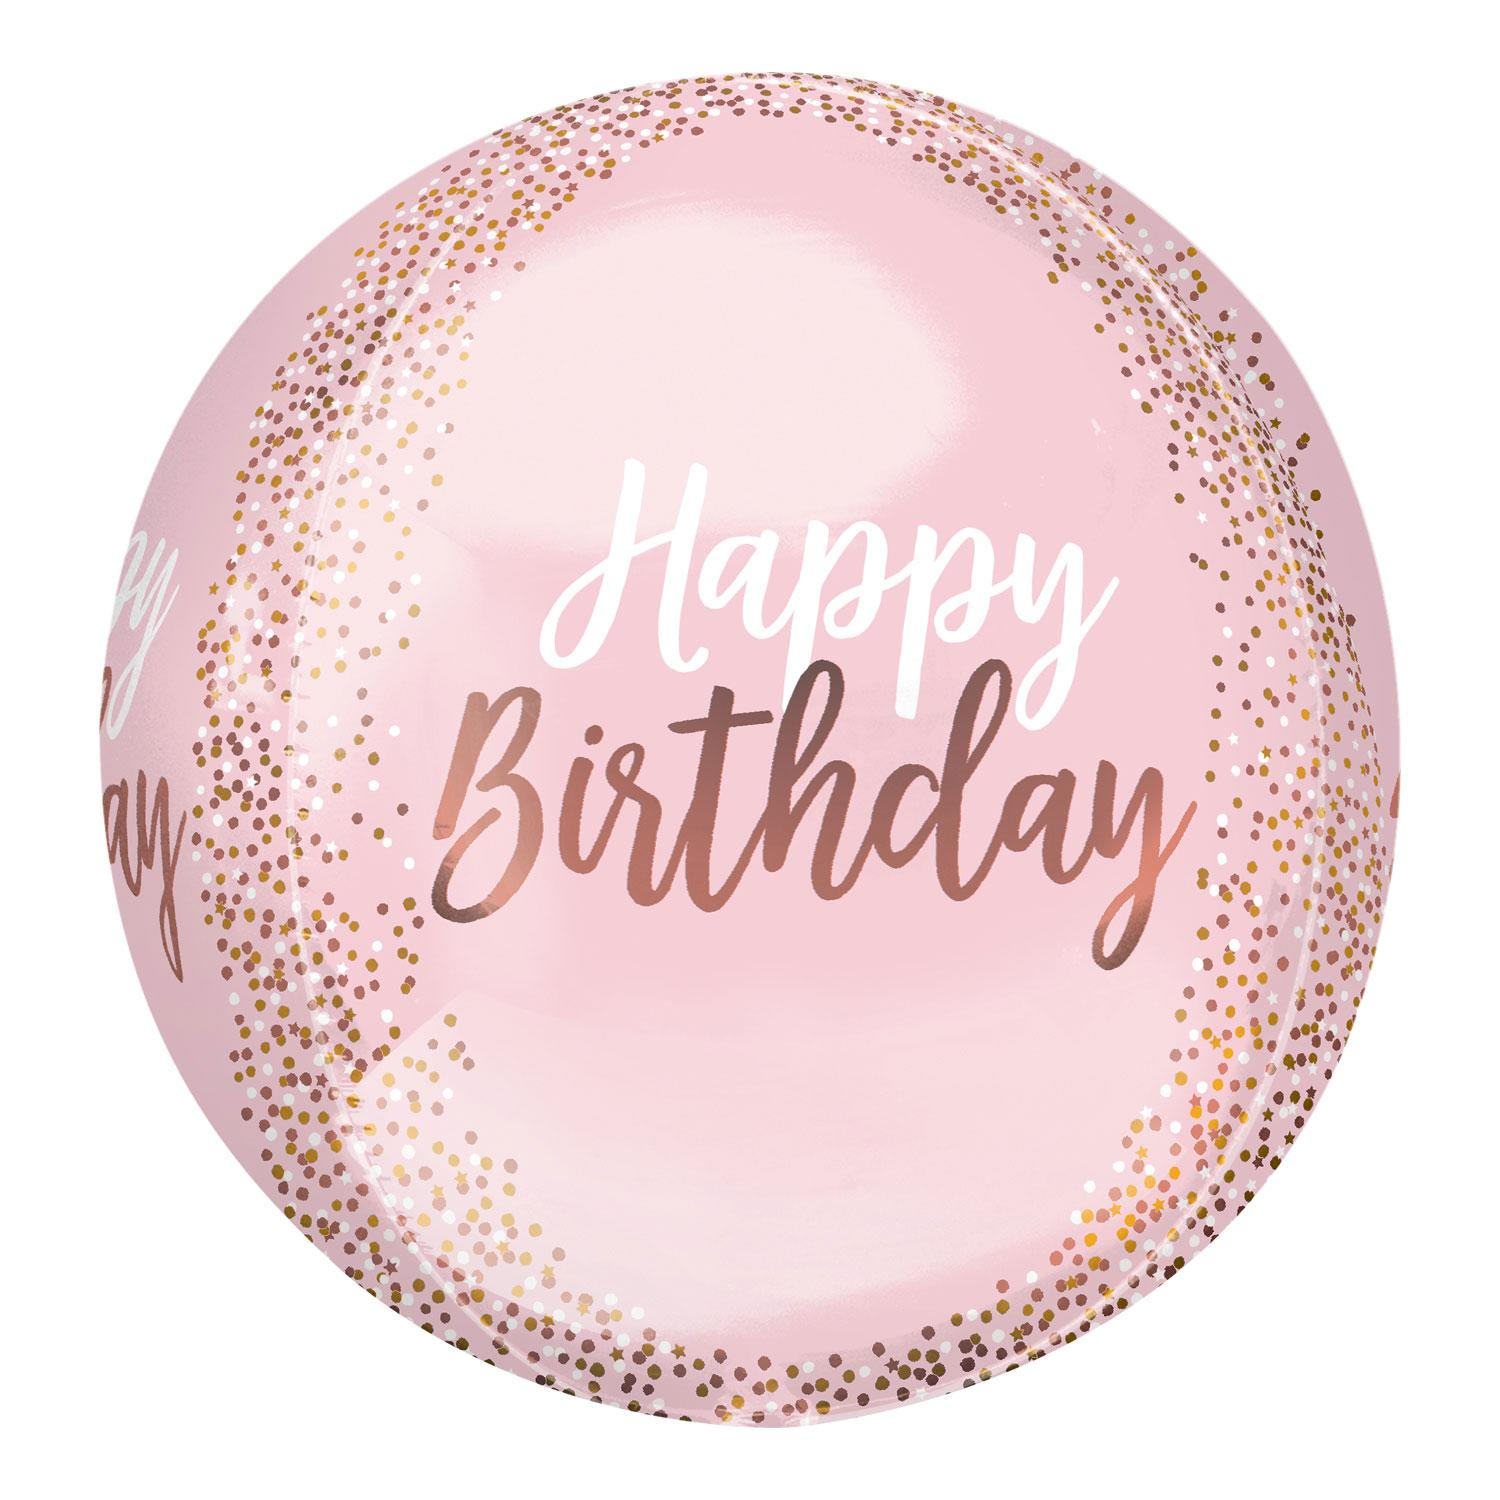 Orbz Foil Balloon Birthday Blush Pink